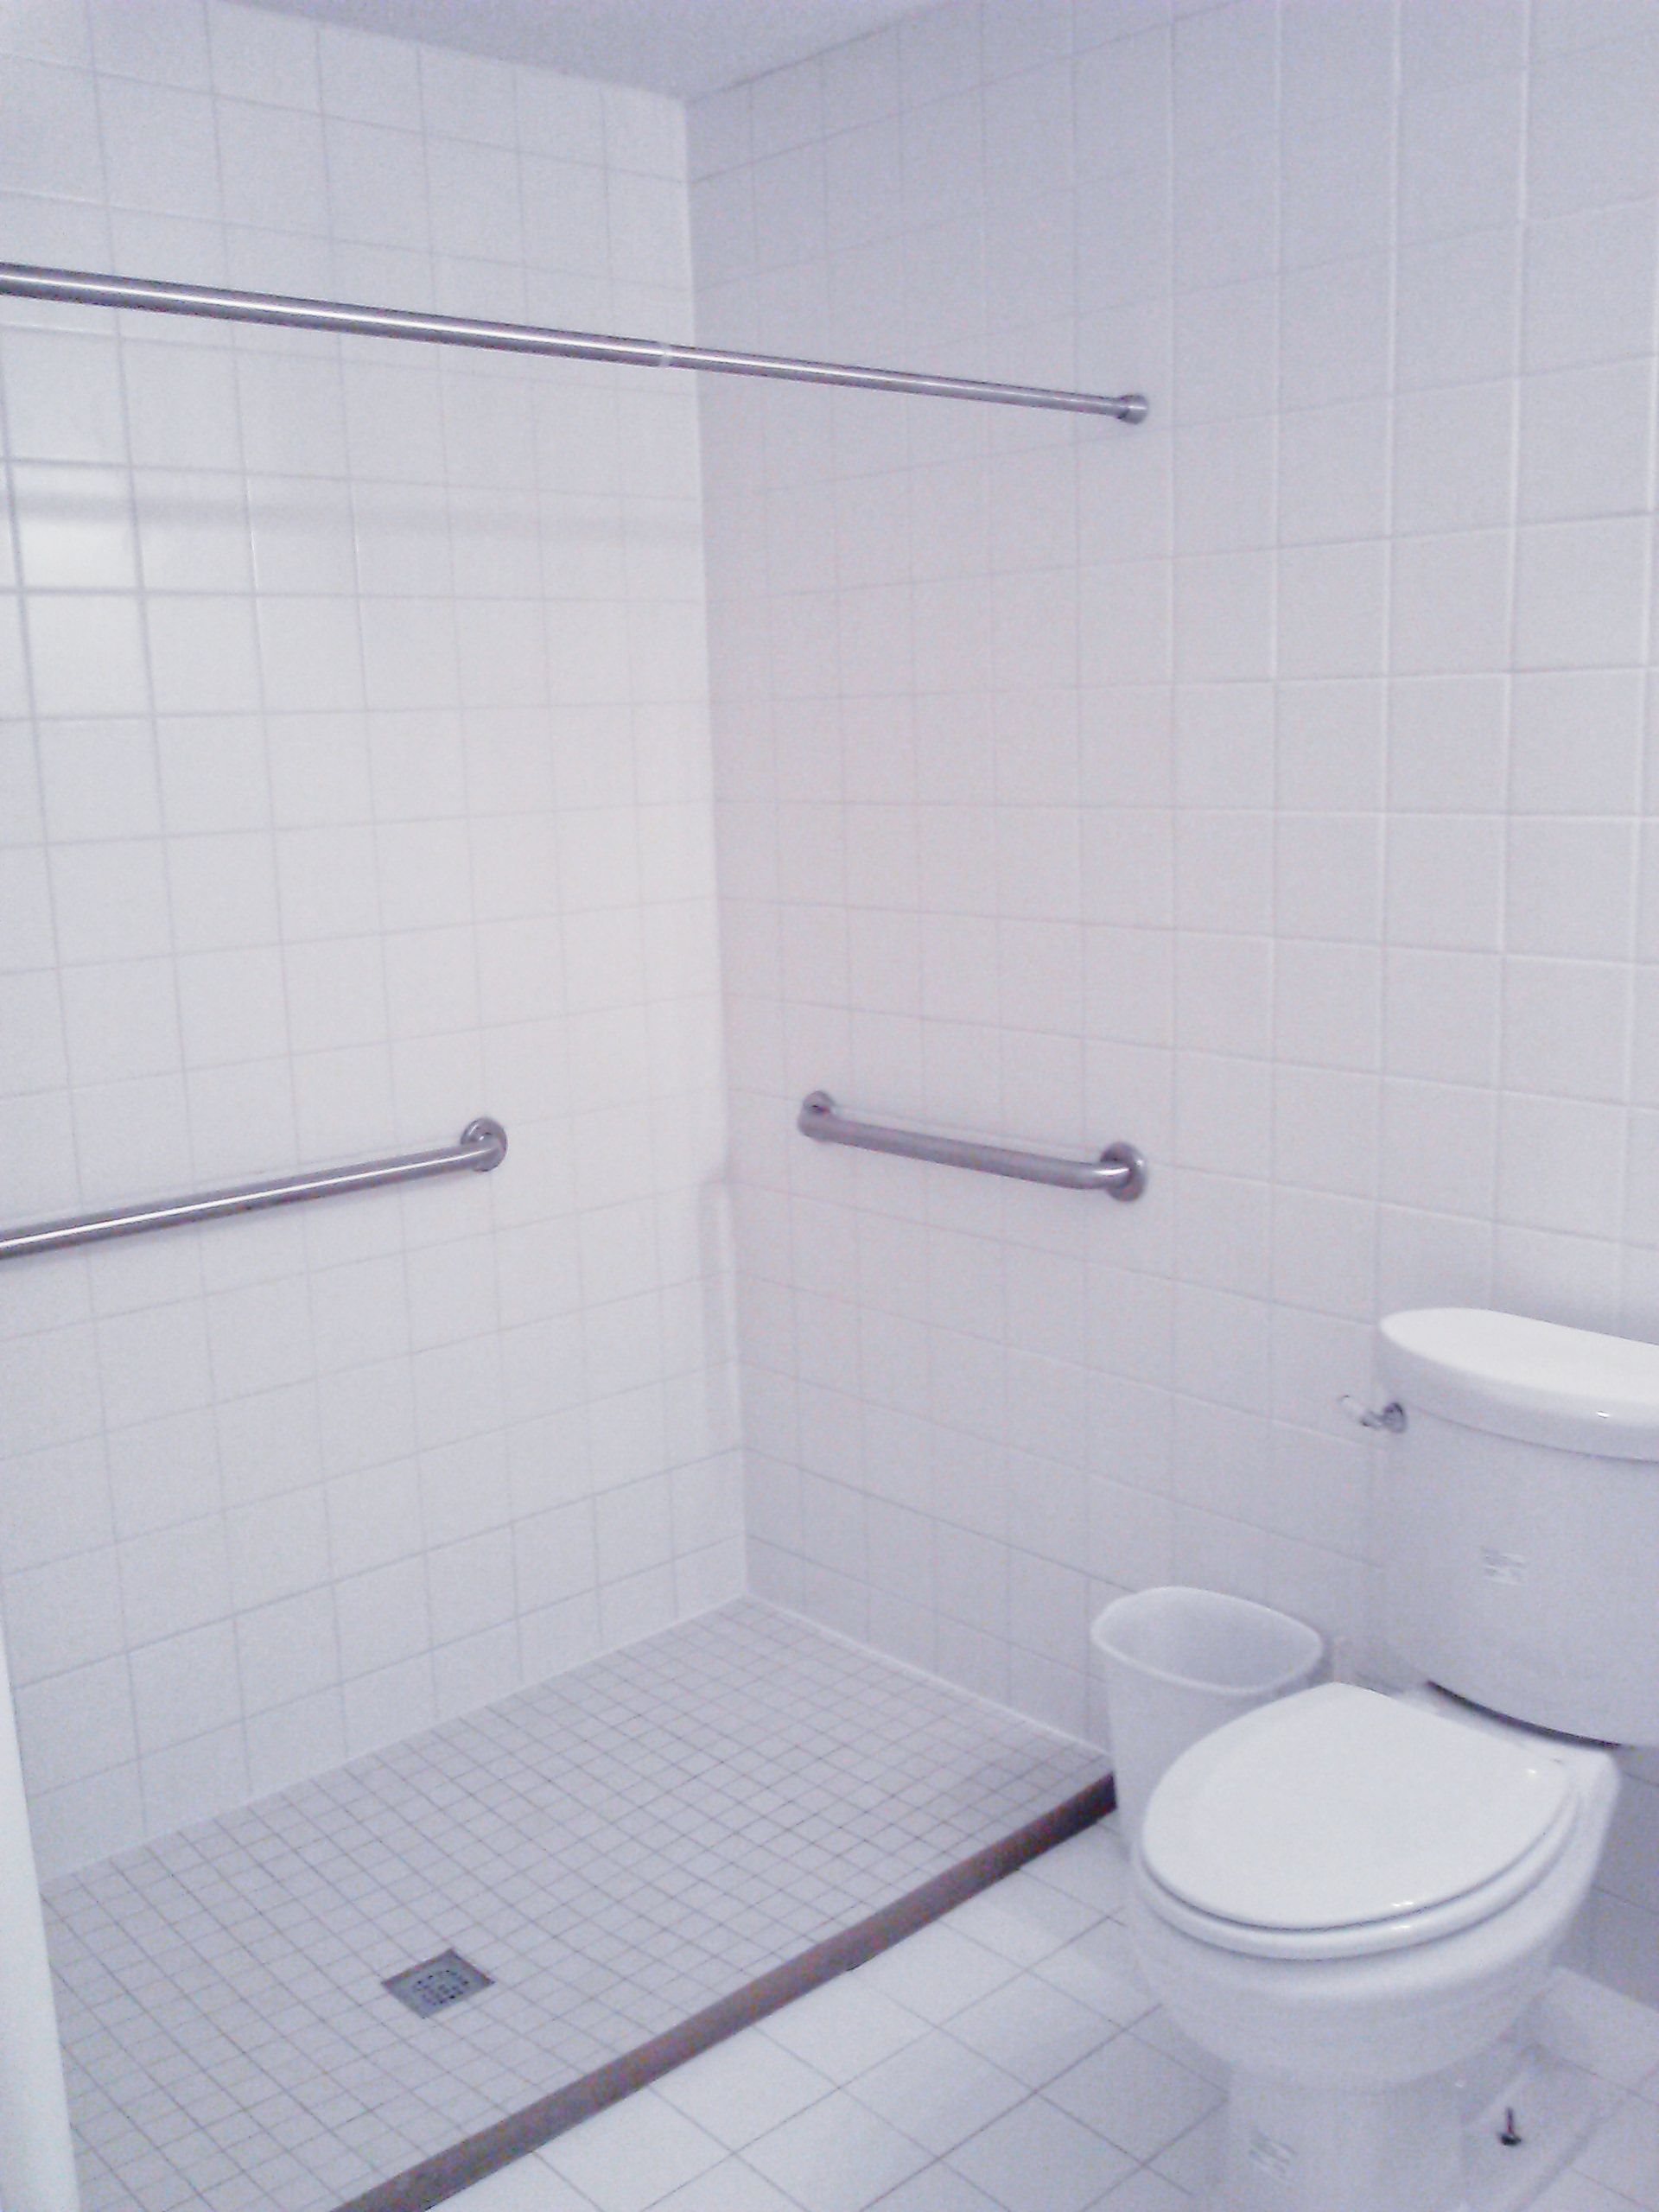 Gallery of what we do restore independence white tile wet room custom tile wetroom floor dailygadgetfo Choice Image